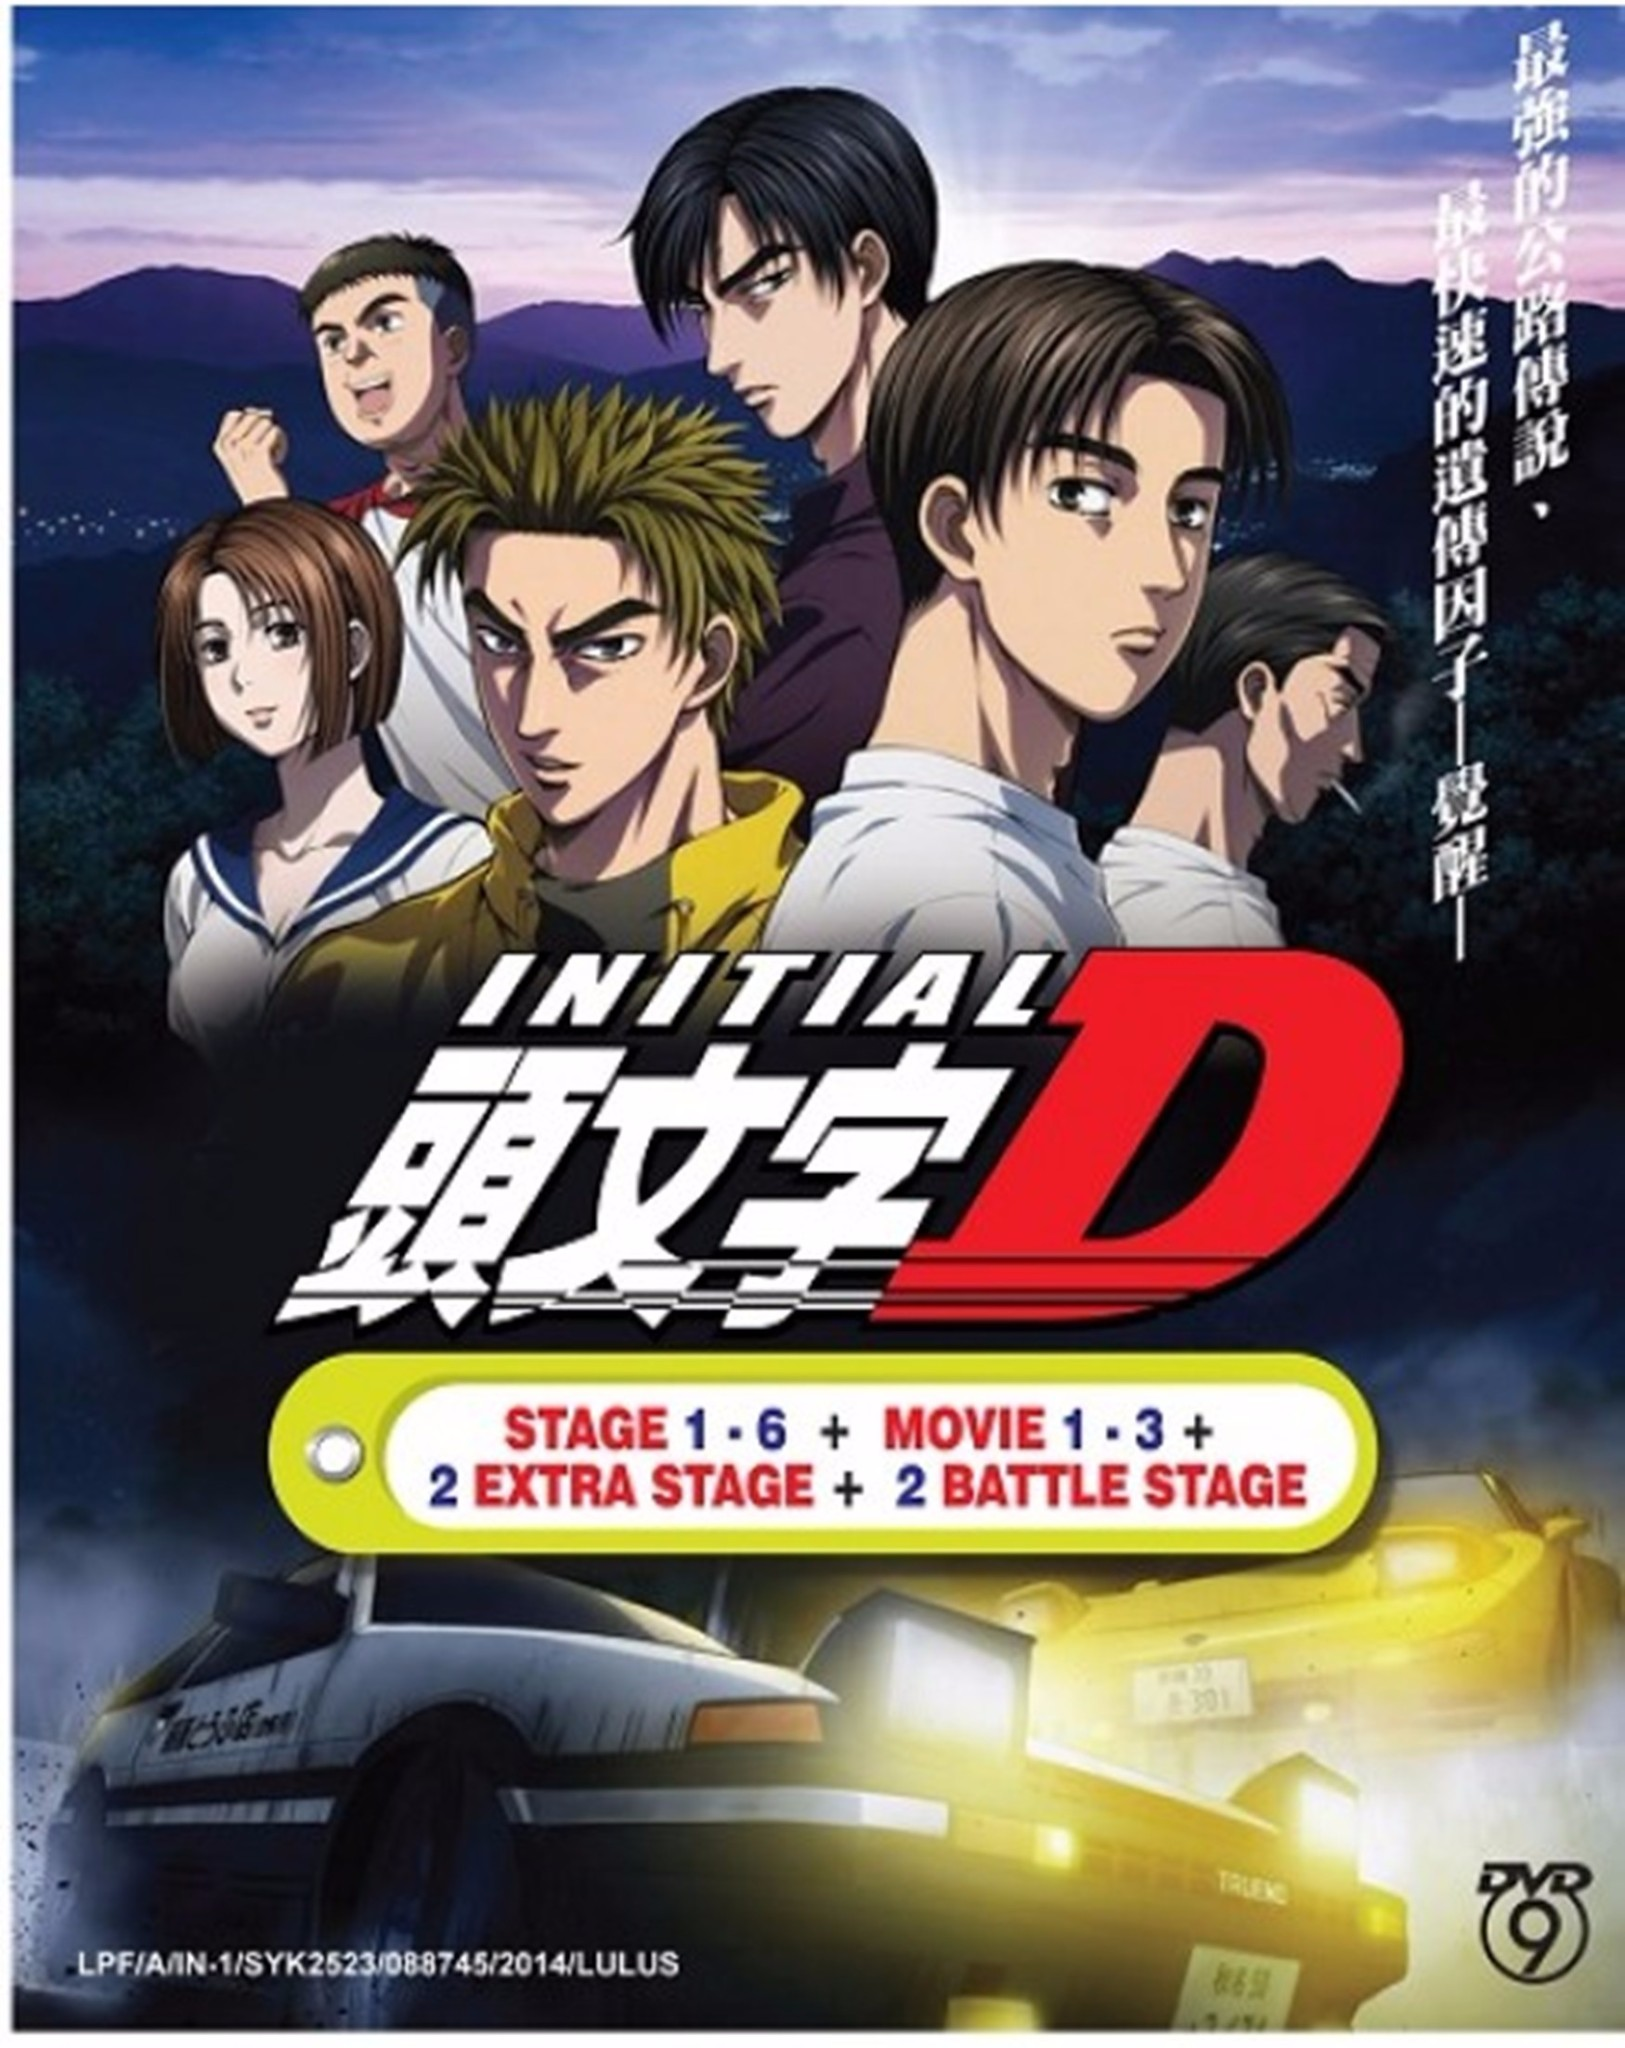 Details about anime dvd initial d stage 1 6 2 battle stage 2 extra stge 3 movie box set